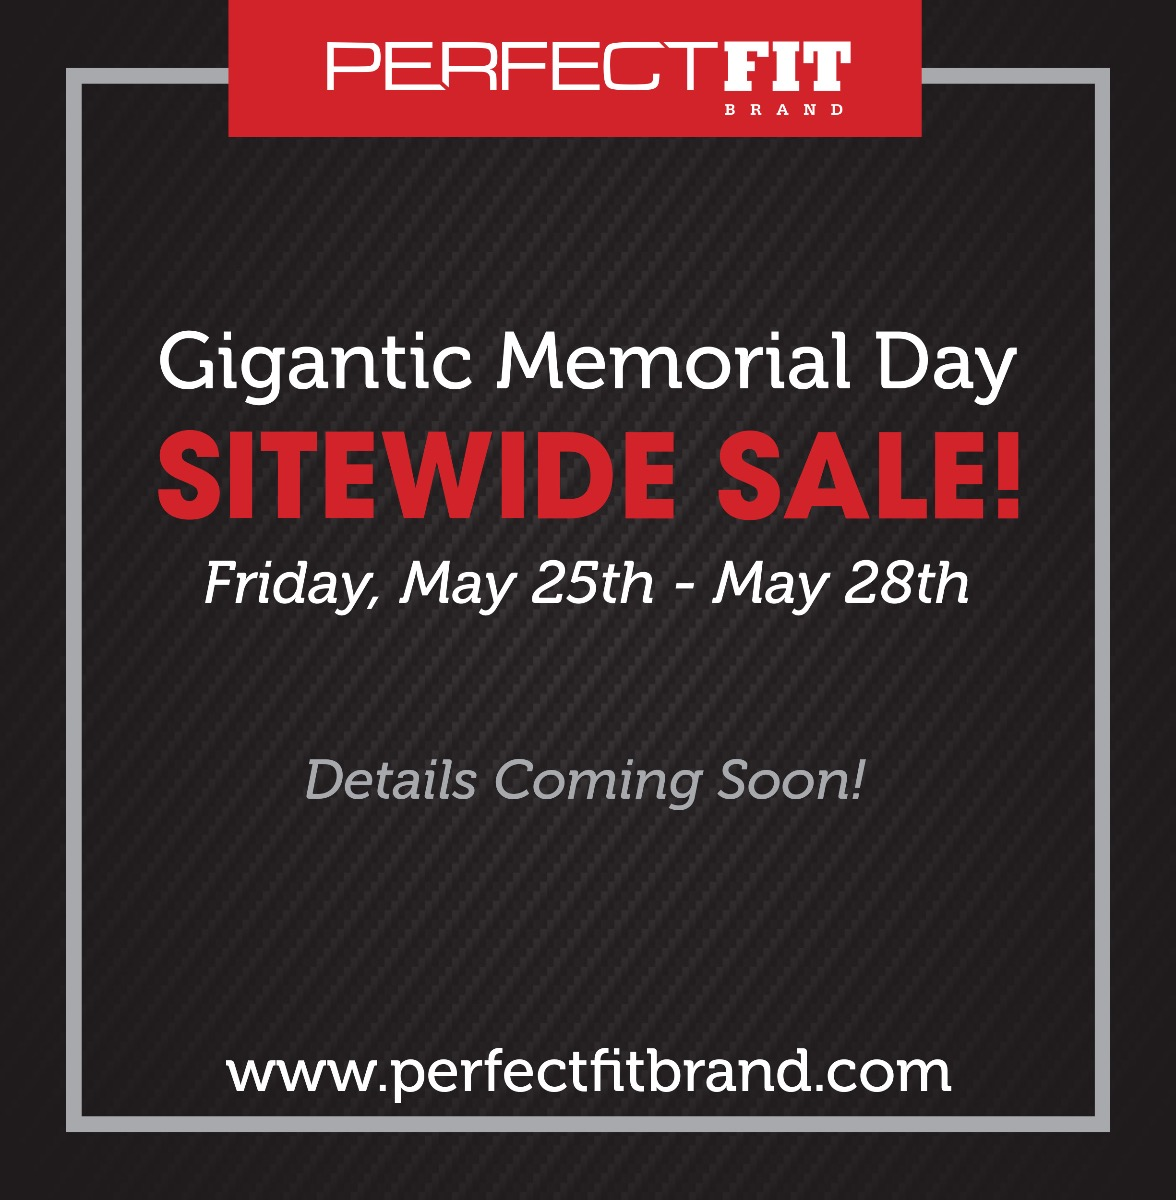 Perfect Fit Brand IML sitewide sale